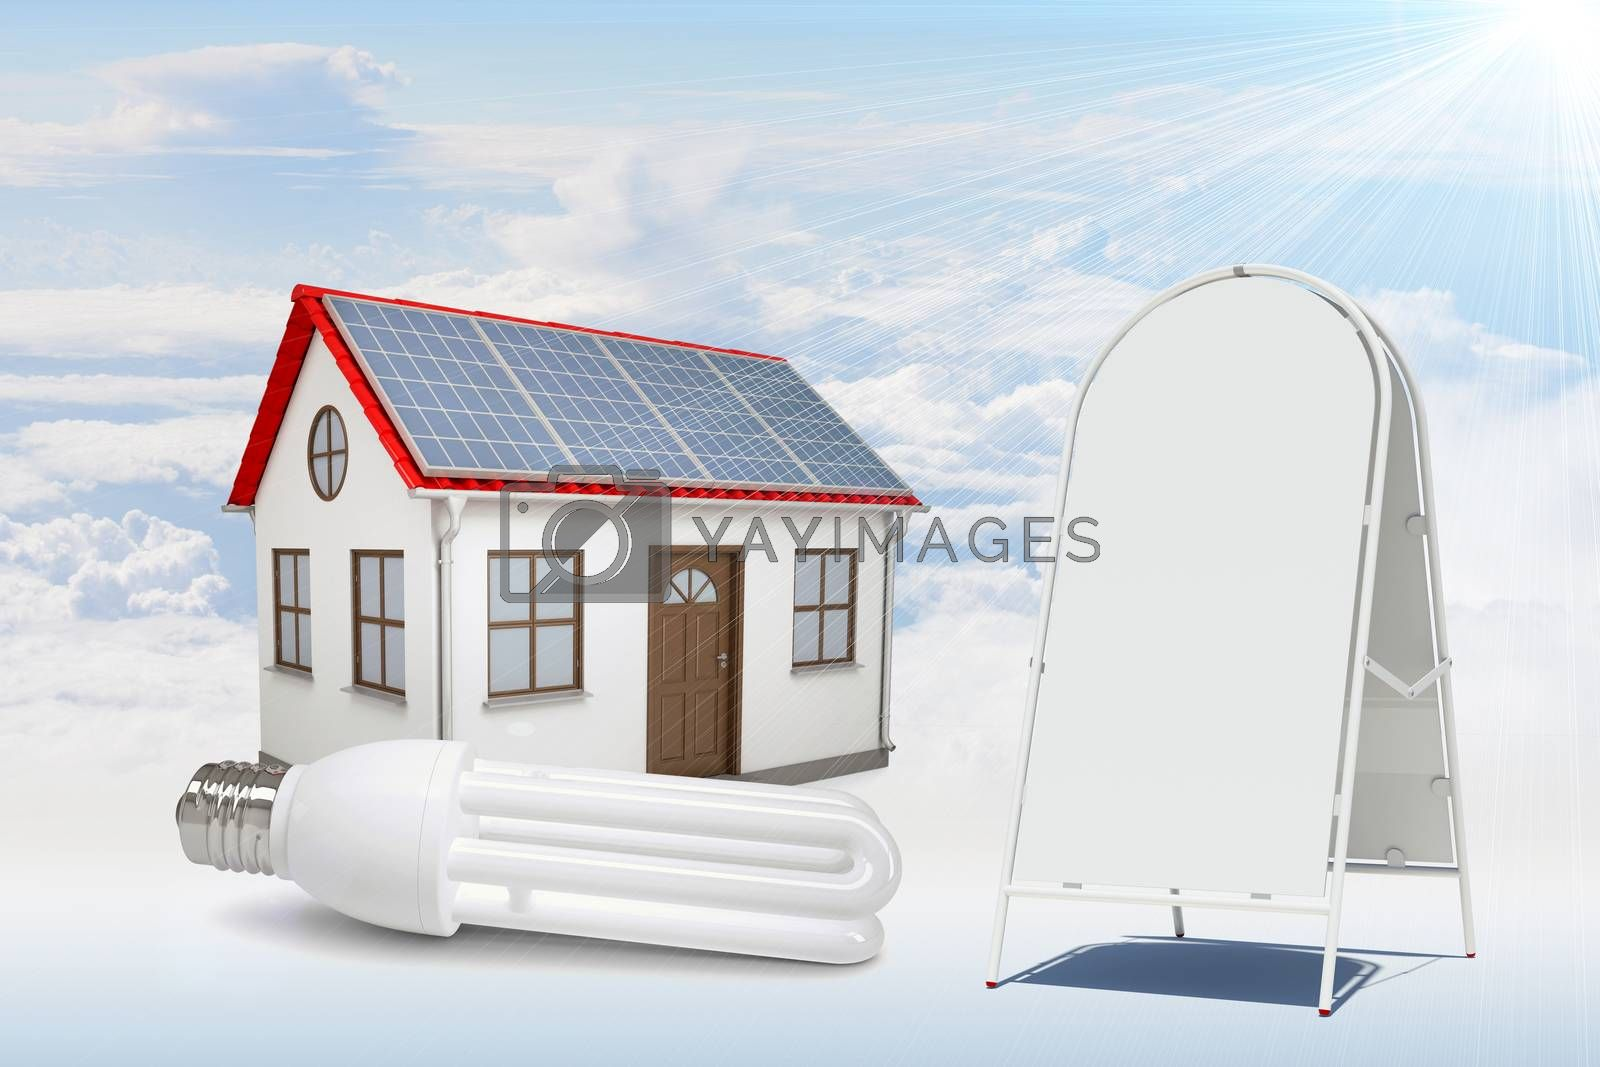 White house with red roof, brown door and solar panels in clouds. Near with house sidewalk sign. Background sun shines brightly on large clouds